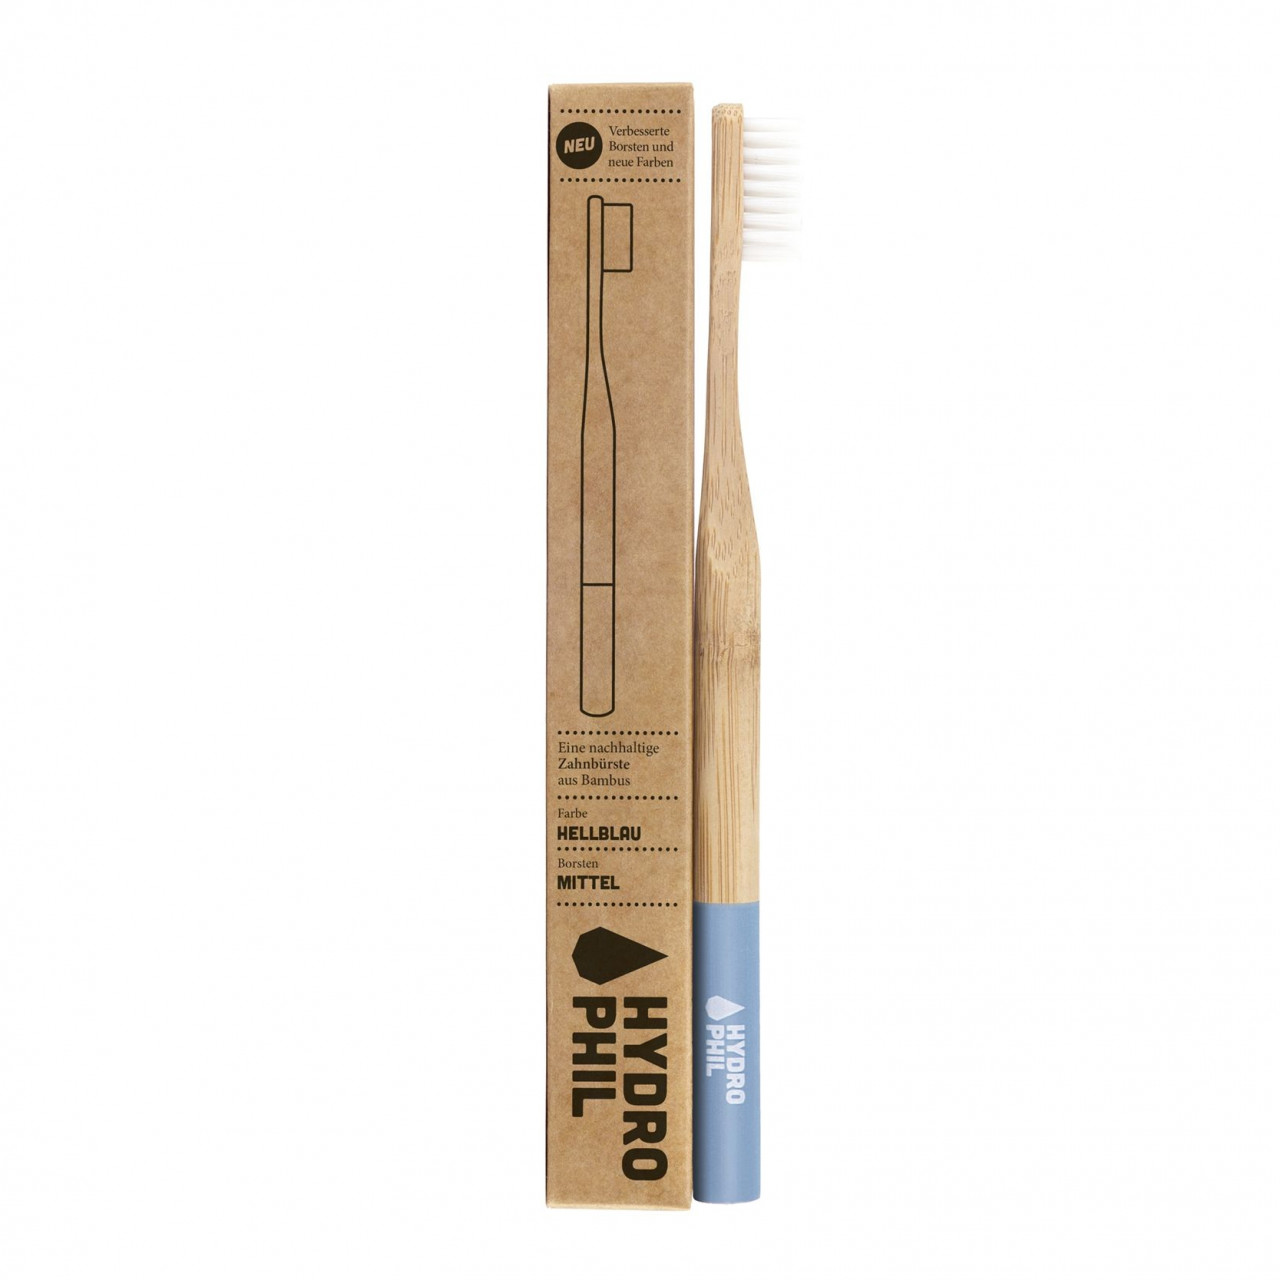 Sustainable toothbrush - light blue